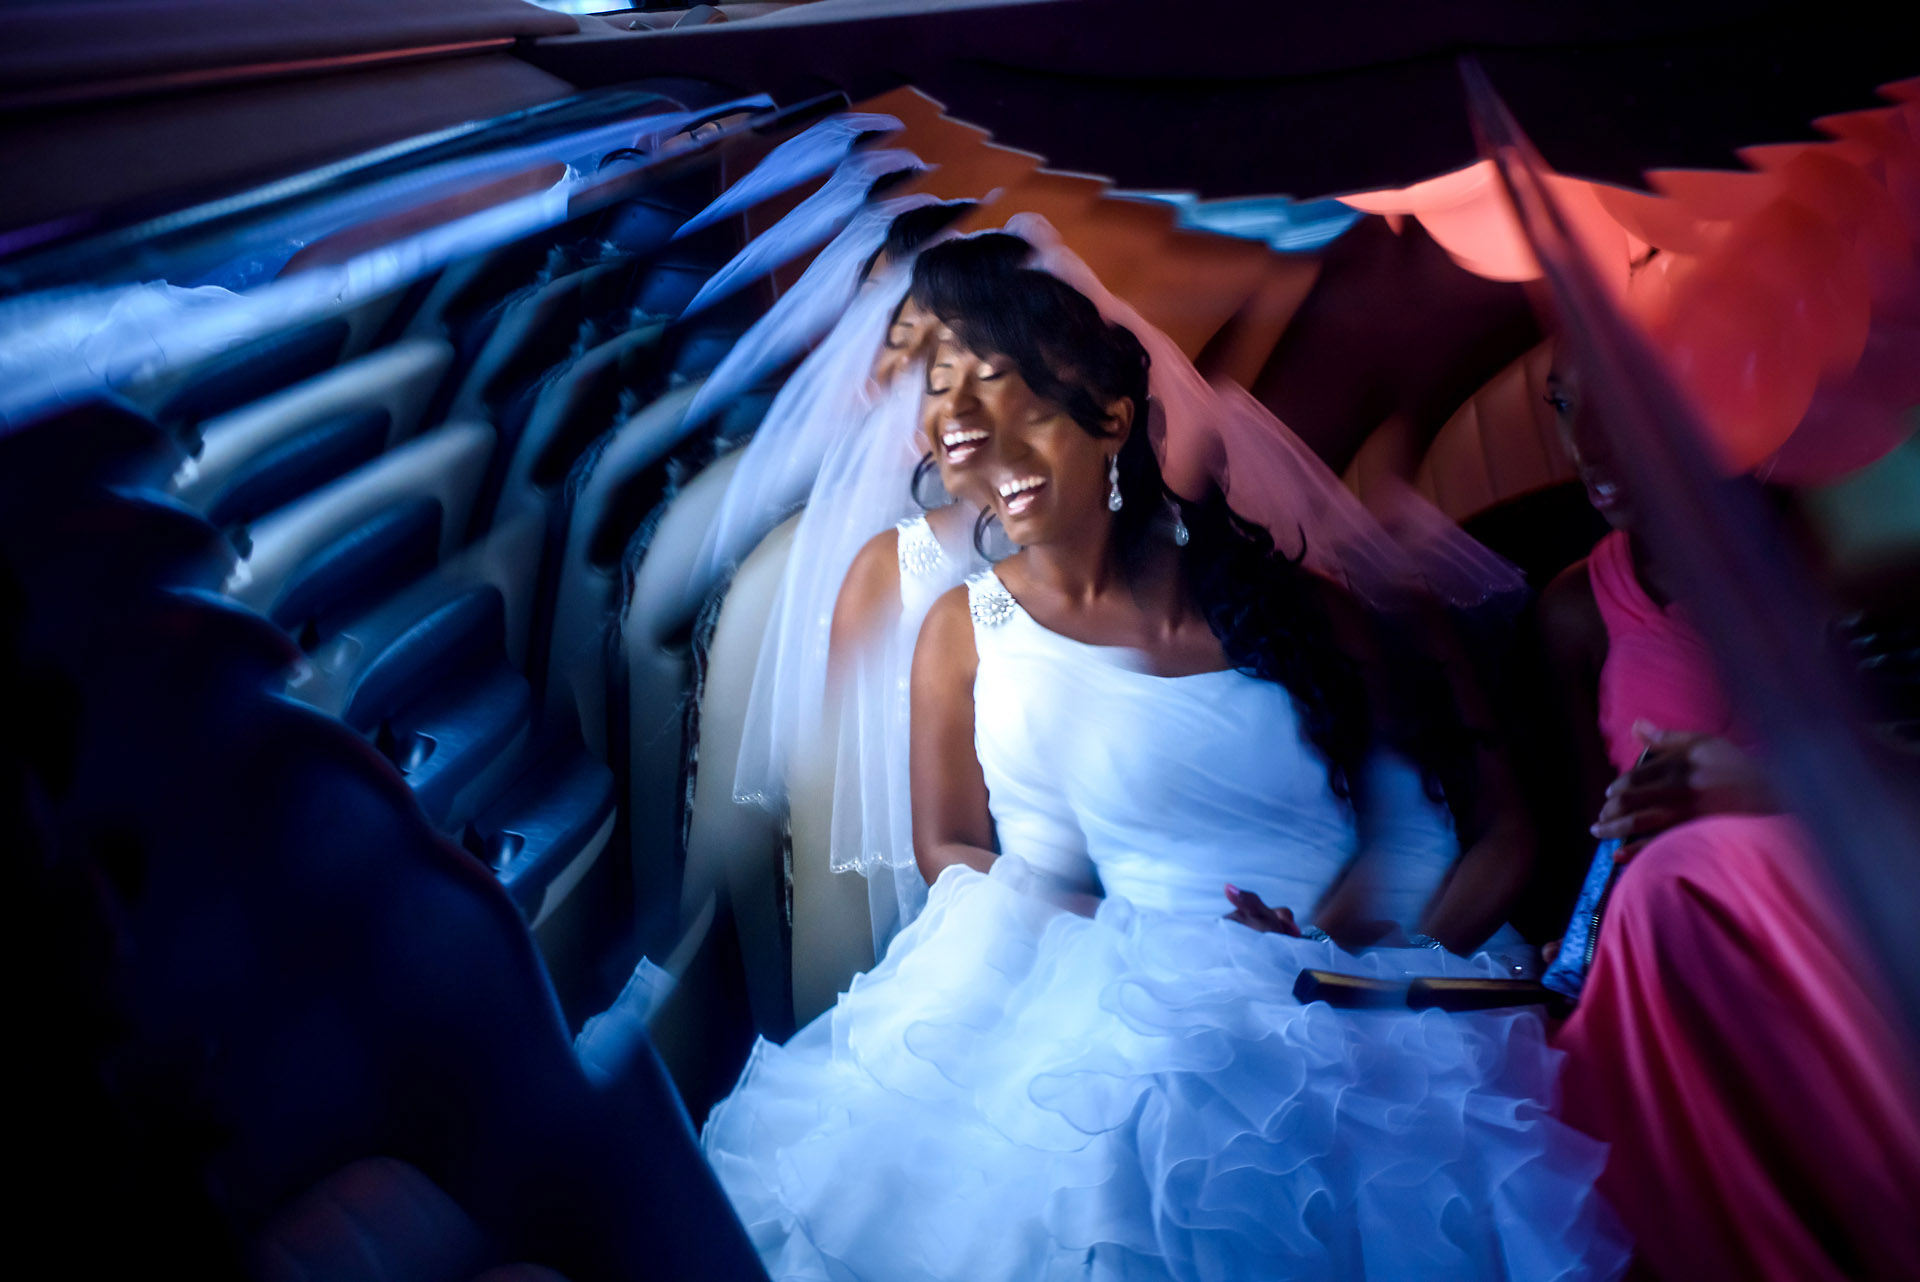 black-wedding-photographer95.jpg